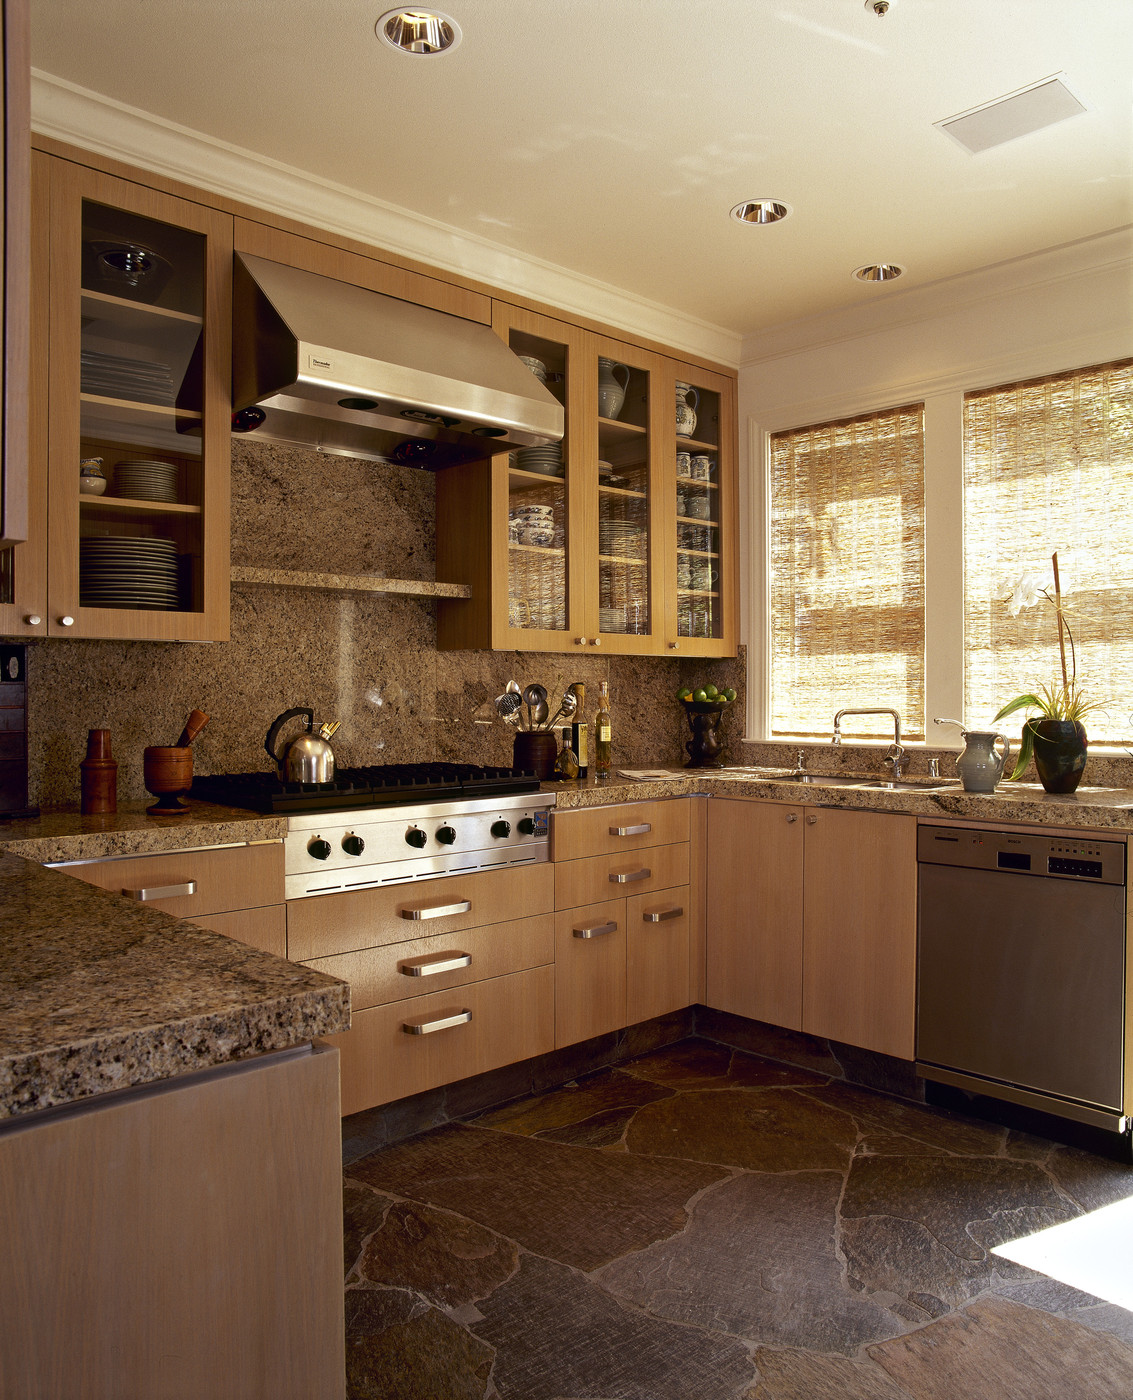 Honey oak cabinets photos 12 of 24 for Kitchen design ideas with oak cabinets